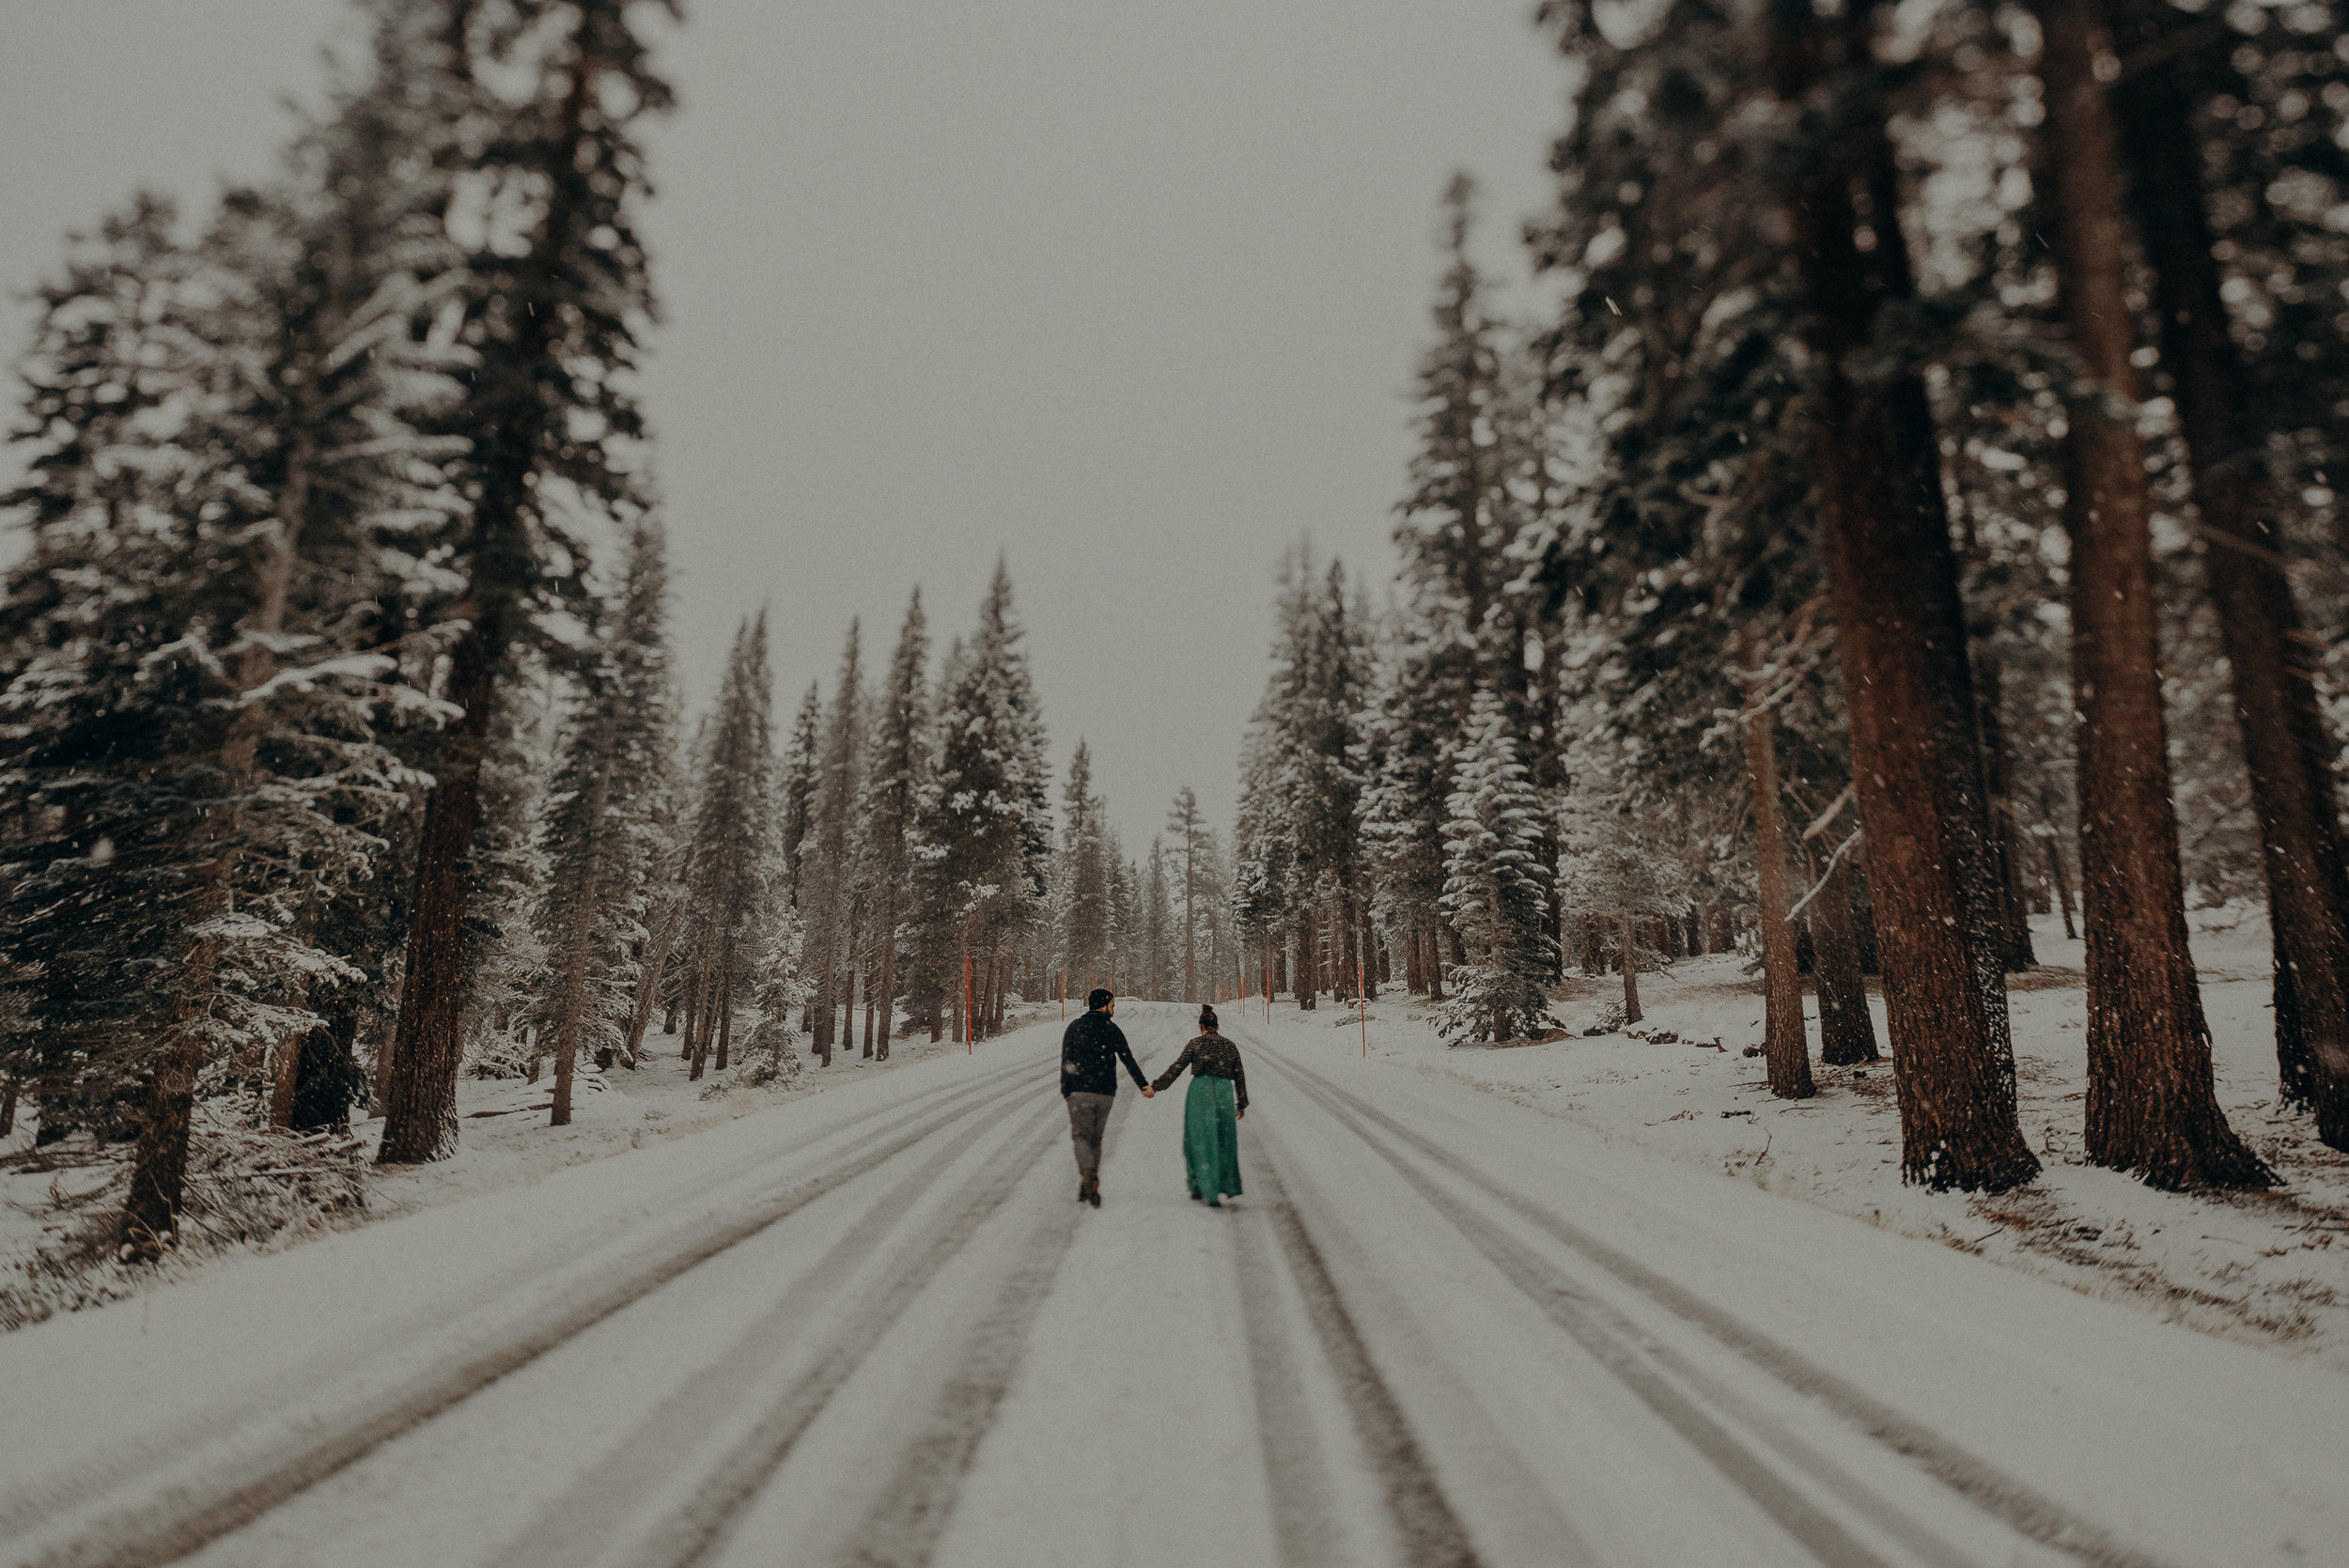 ©Isaiah + Taylor Photography - Los Angeles Wedding Photographer - Snowing engagement session-026.jpg